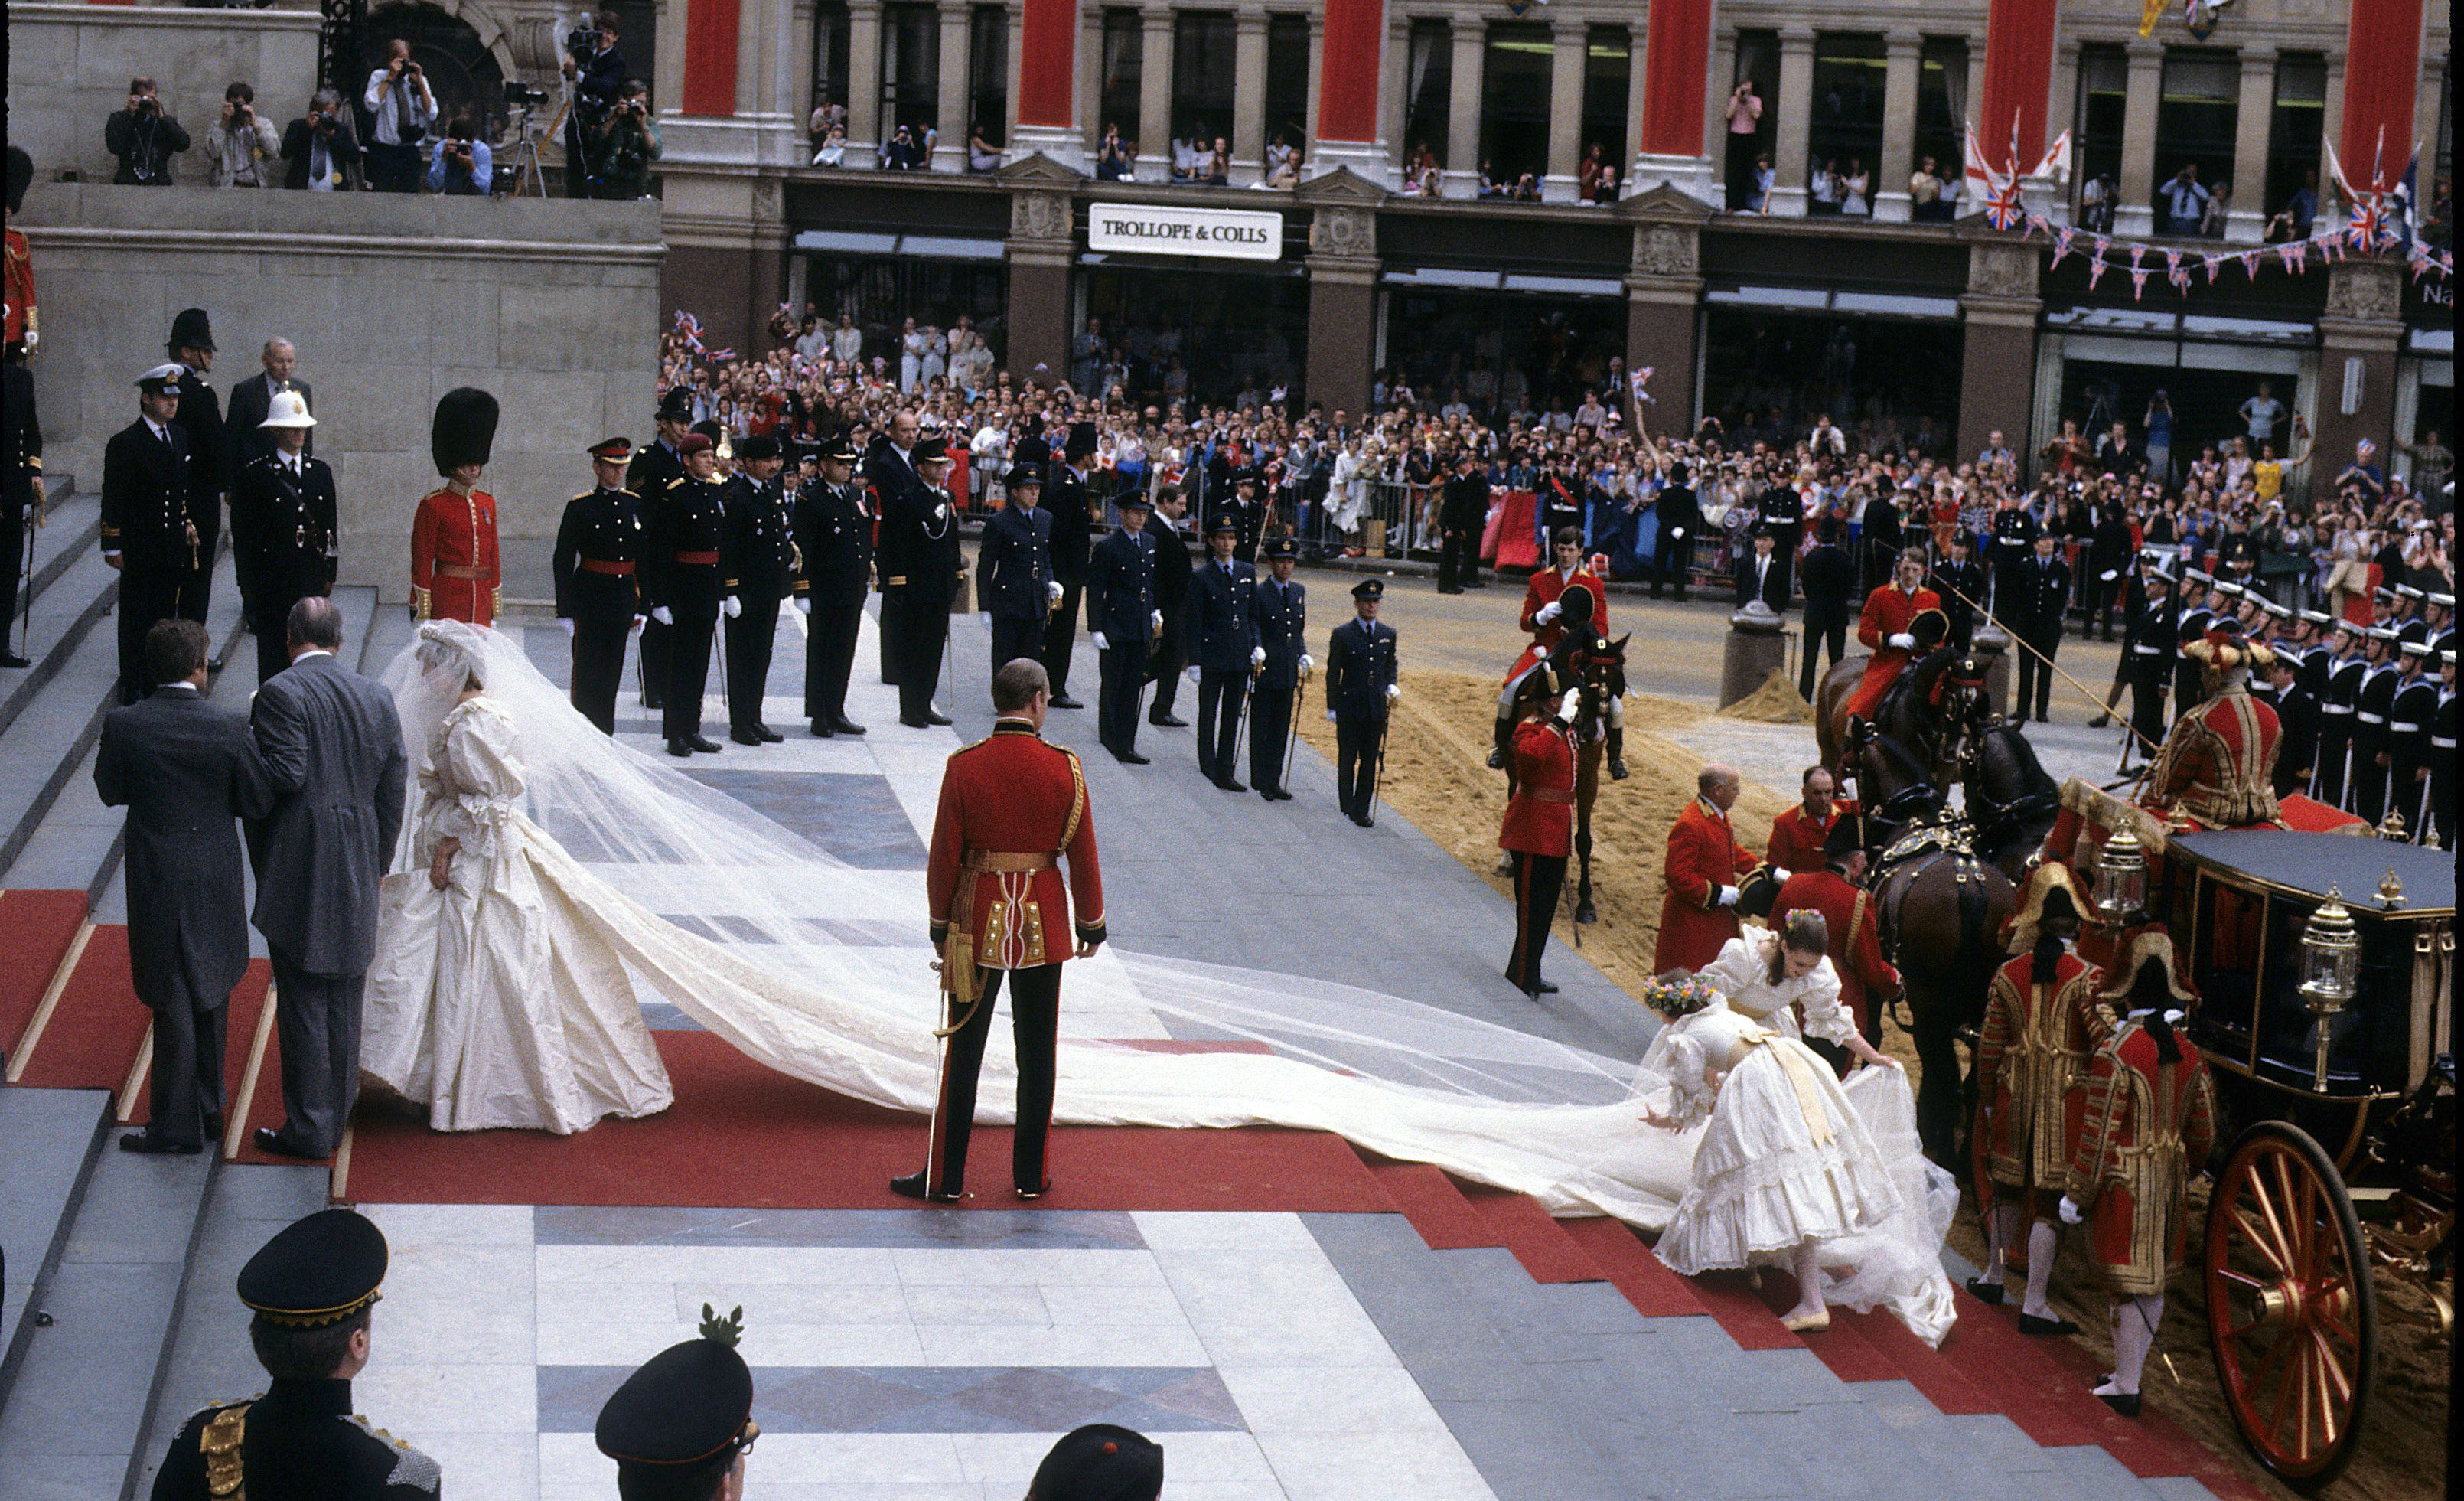 Diana, Princess of Wales, wearing an Emanuel wedding dress, enters St. Paul's Cathedral on the hand of her father, Earl Spenc